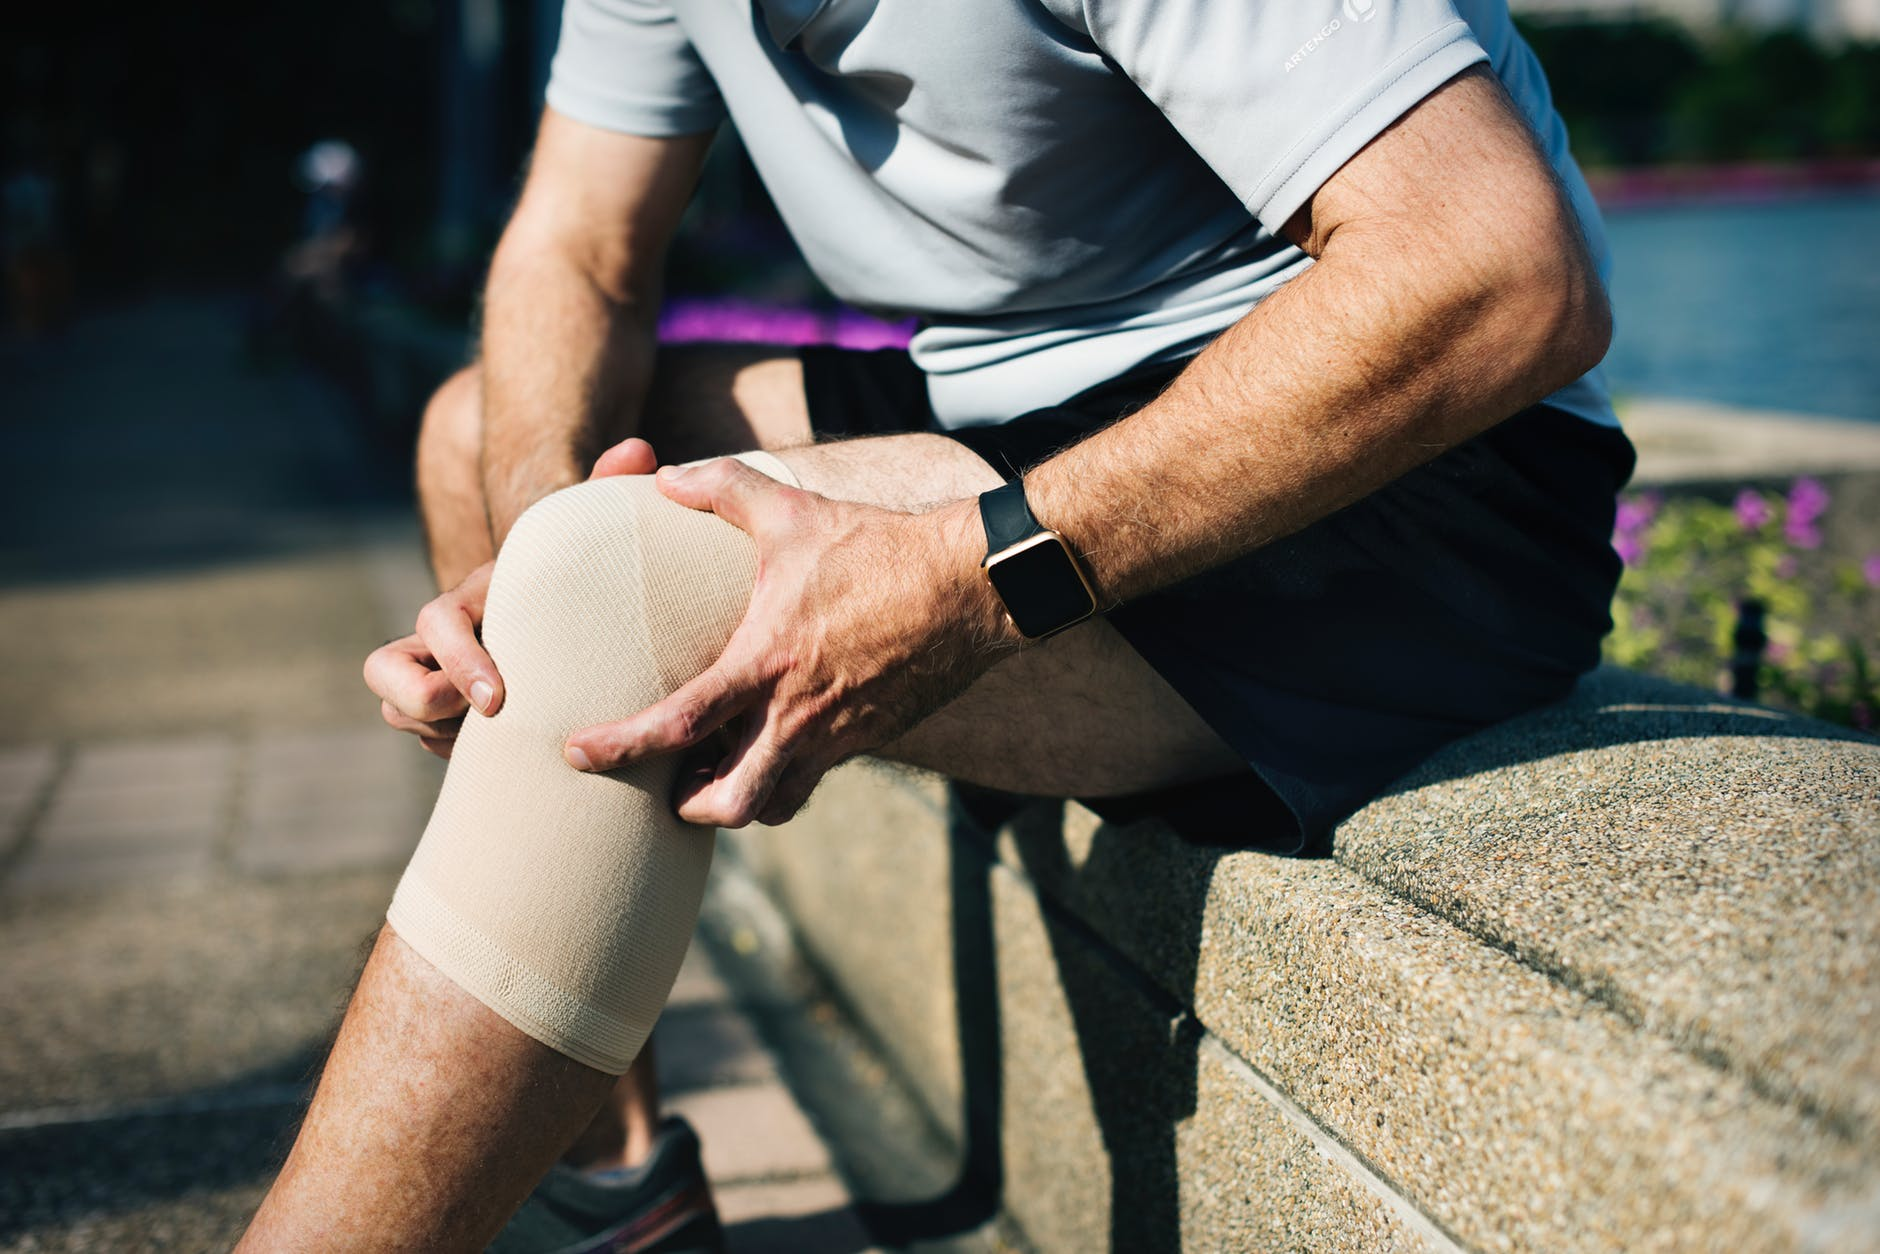 Knee replacement surgery from surgeryxchange